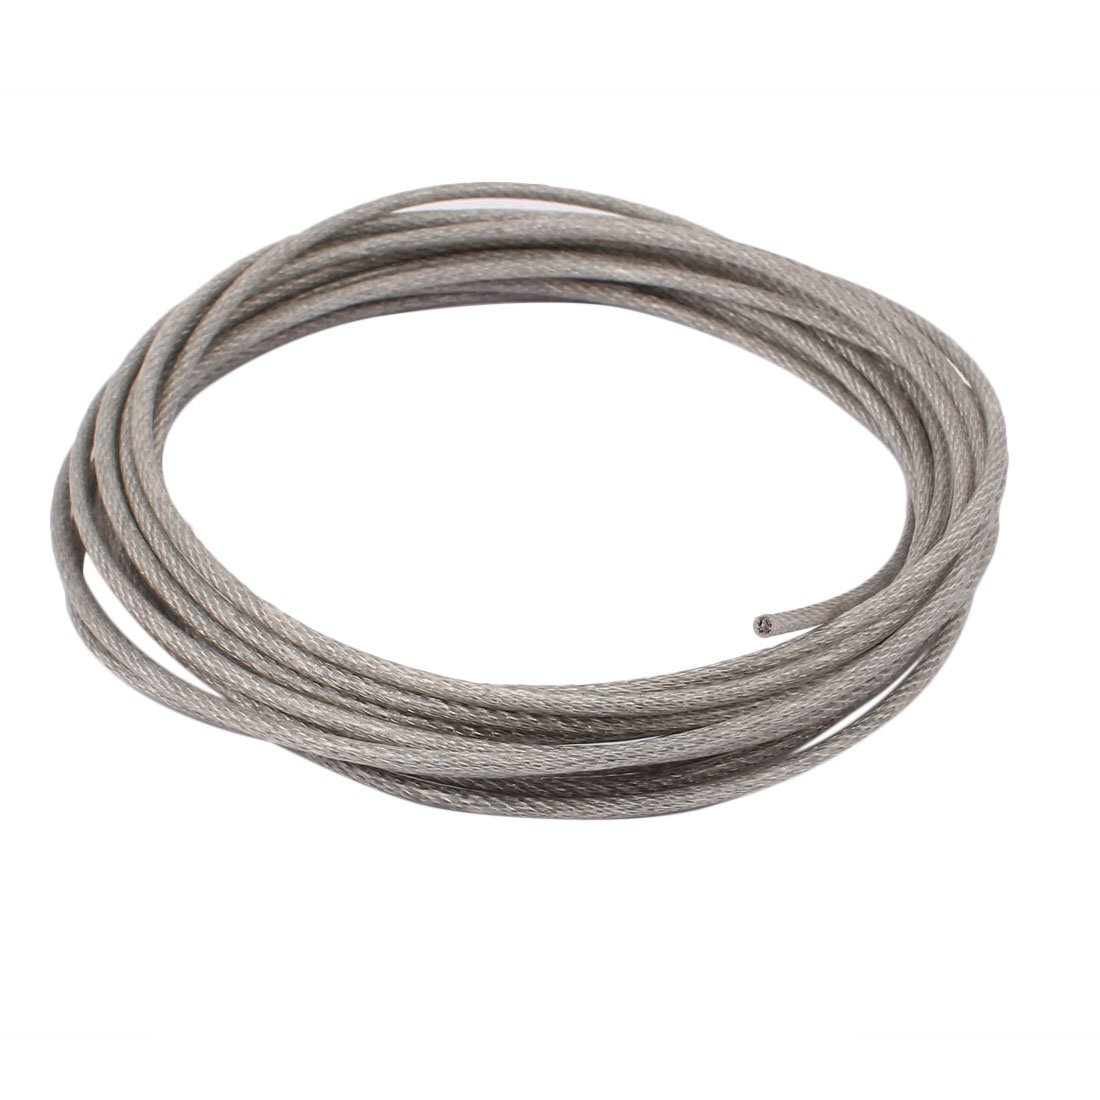 uxcell 5M Length 3mm Diameter Plastic Coated Flexible Steel Wire Cable Rope Silver Tone